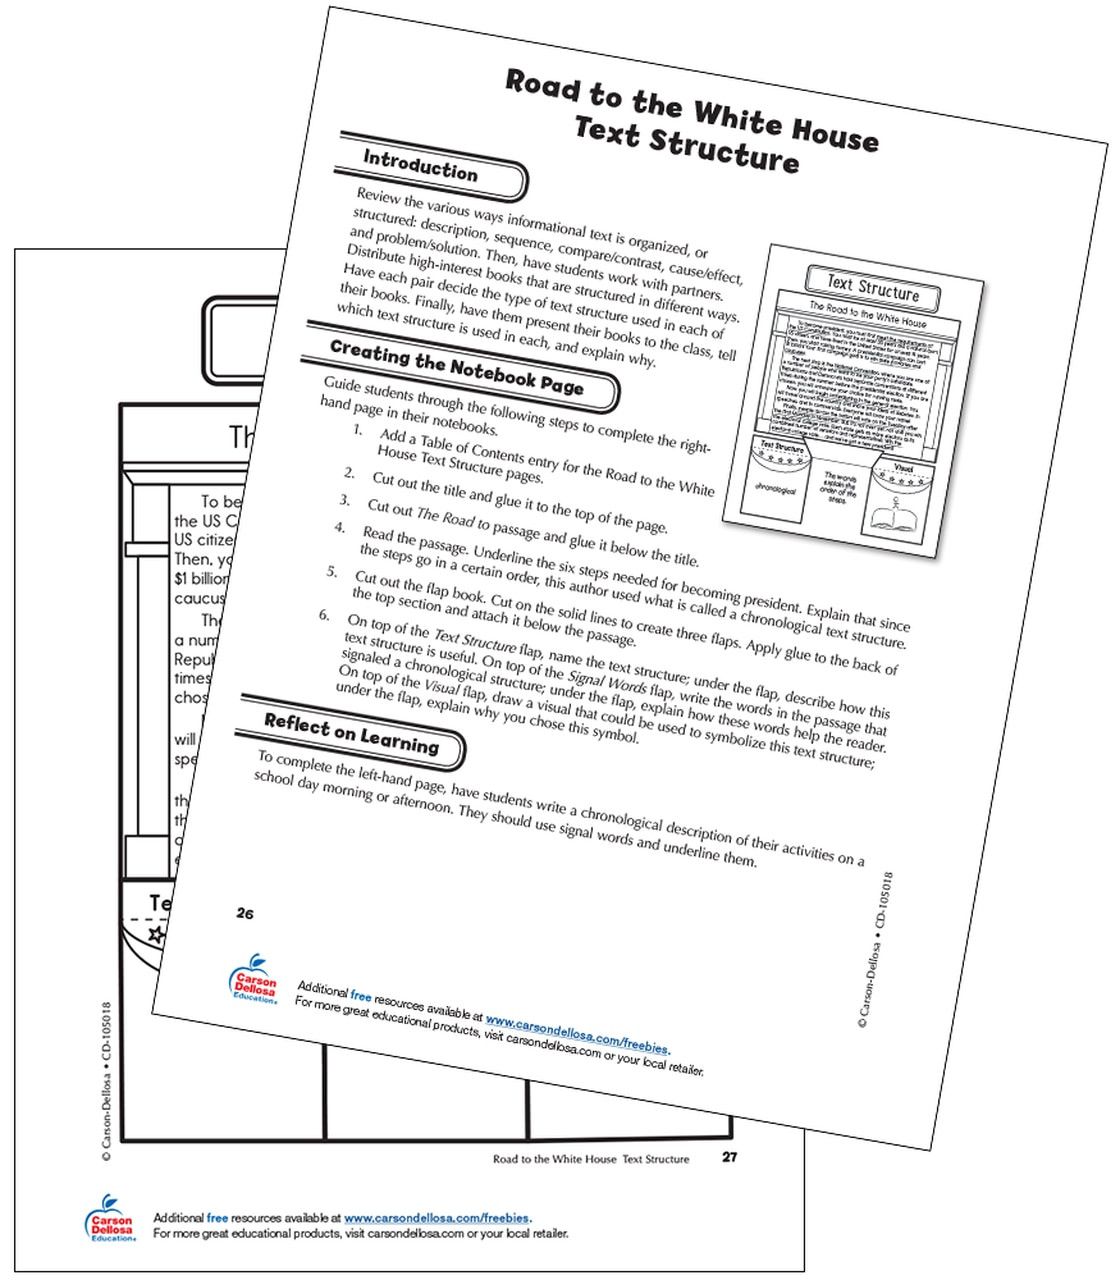 Text Structure Worksheets Grade 4 the Road to the White House Text Structure Grade 5